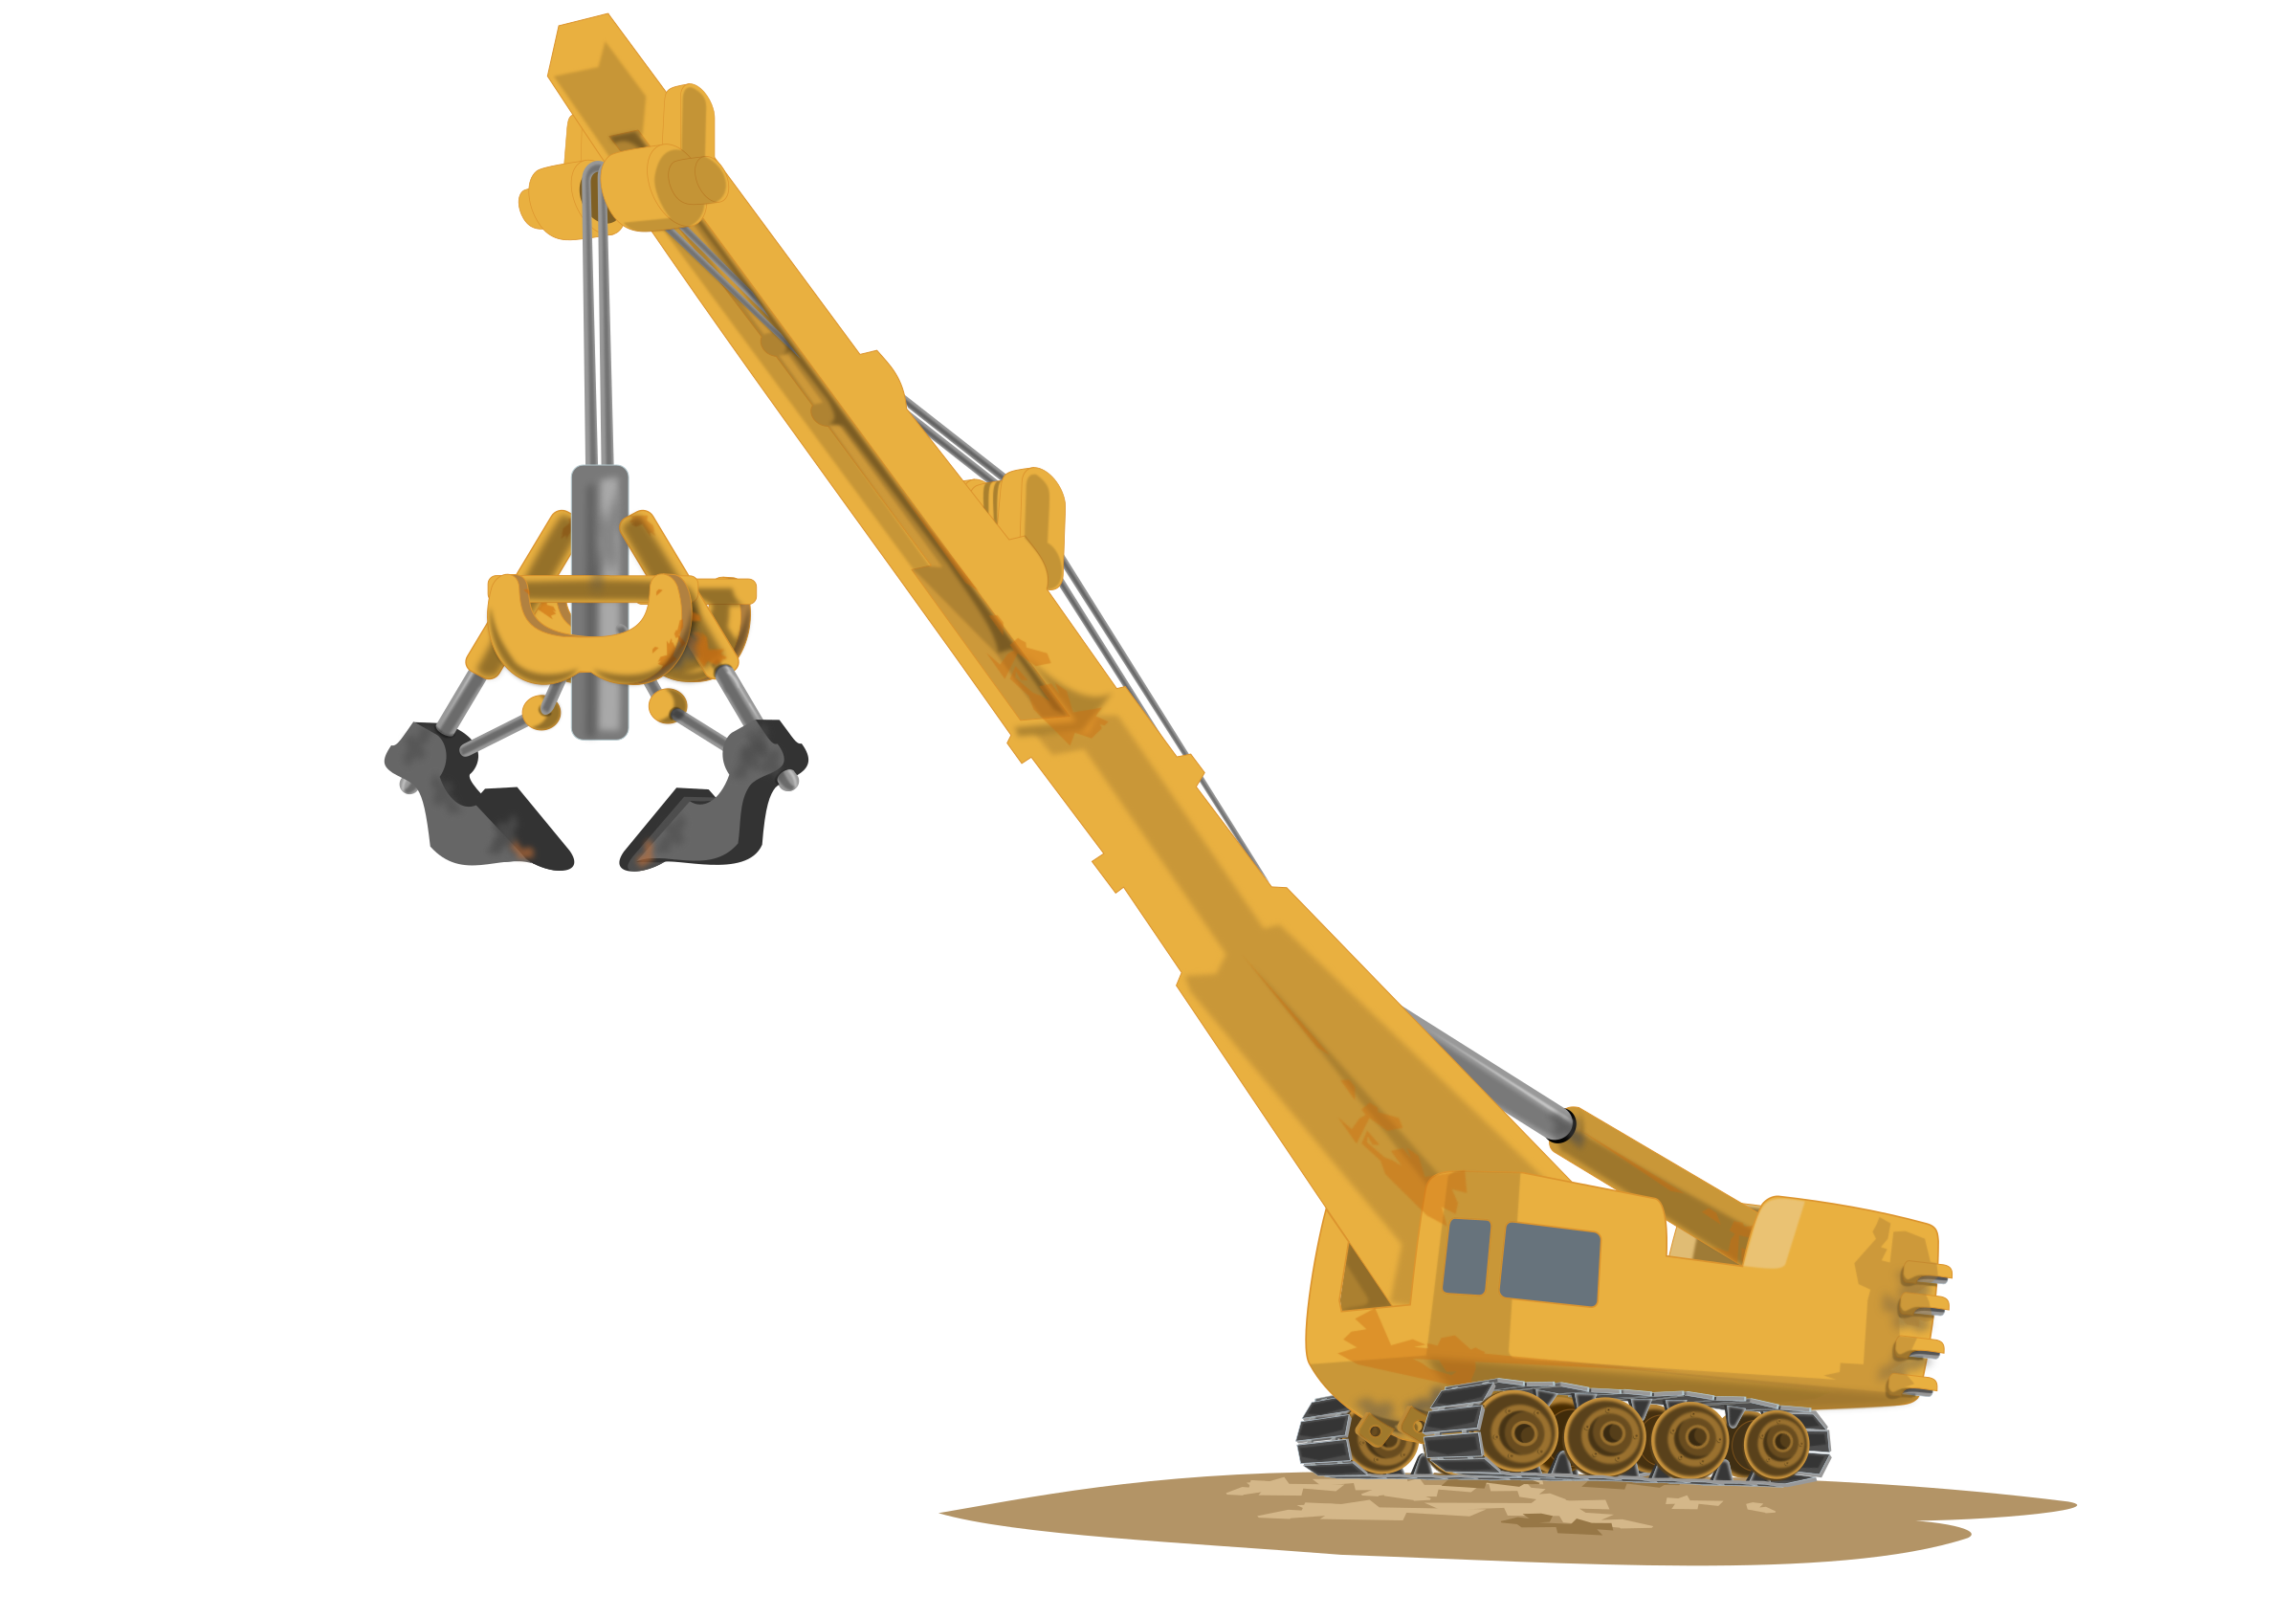 Crane clipart #6, Download drawings